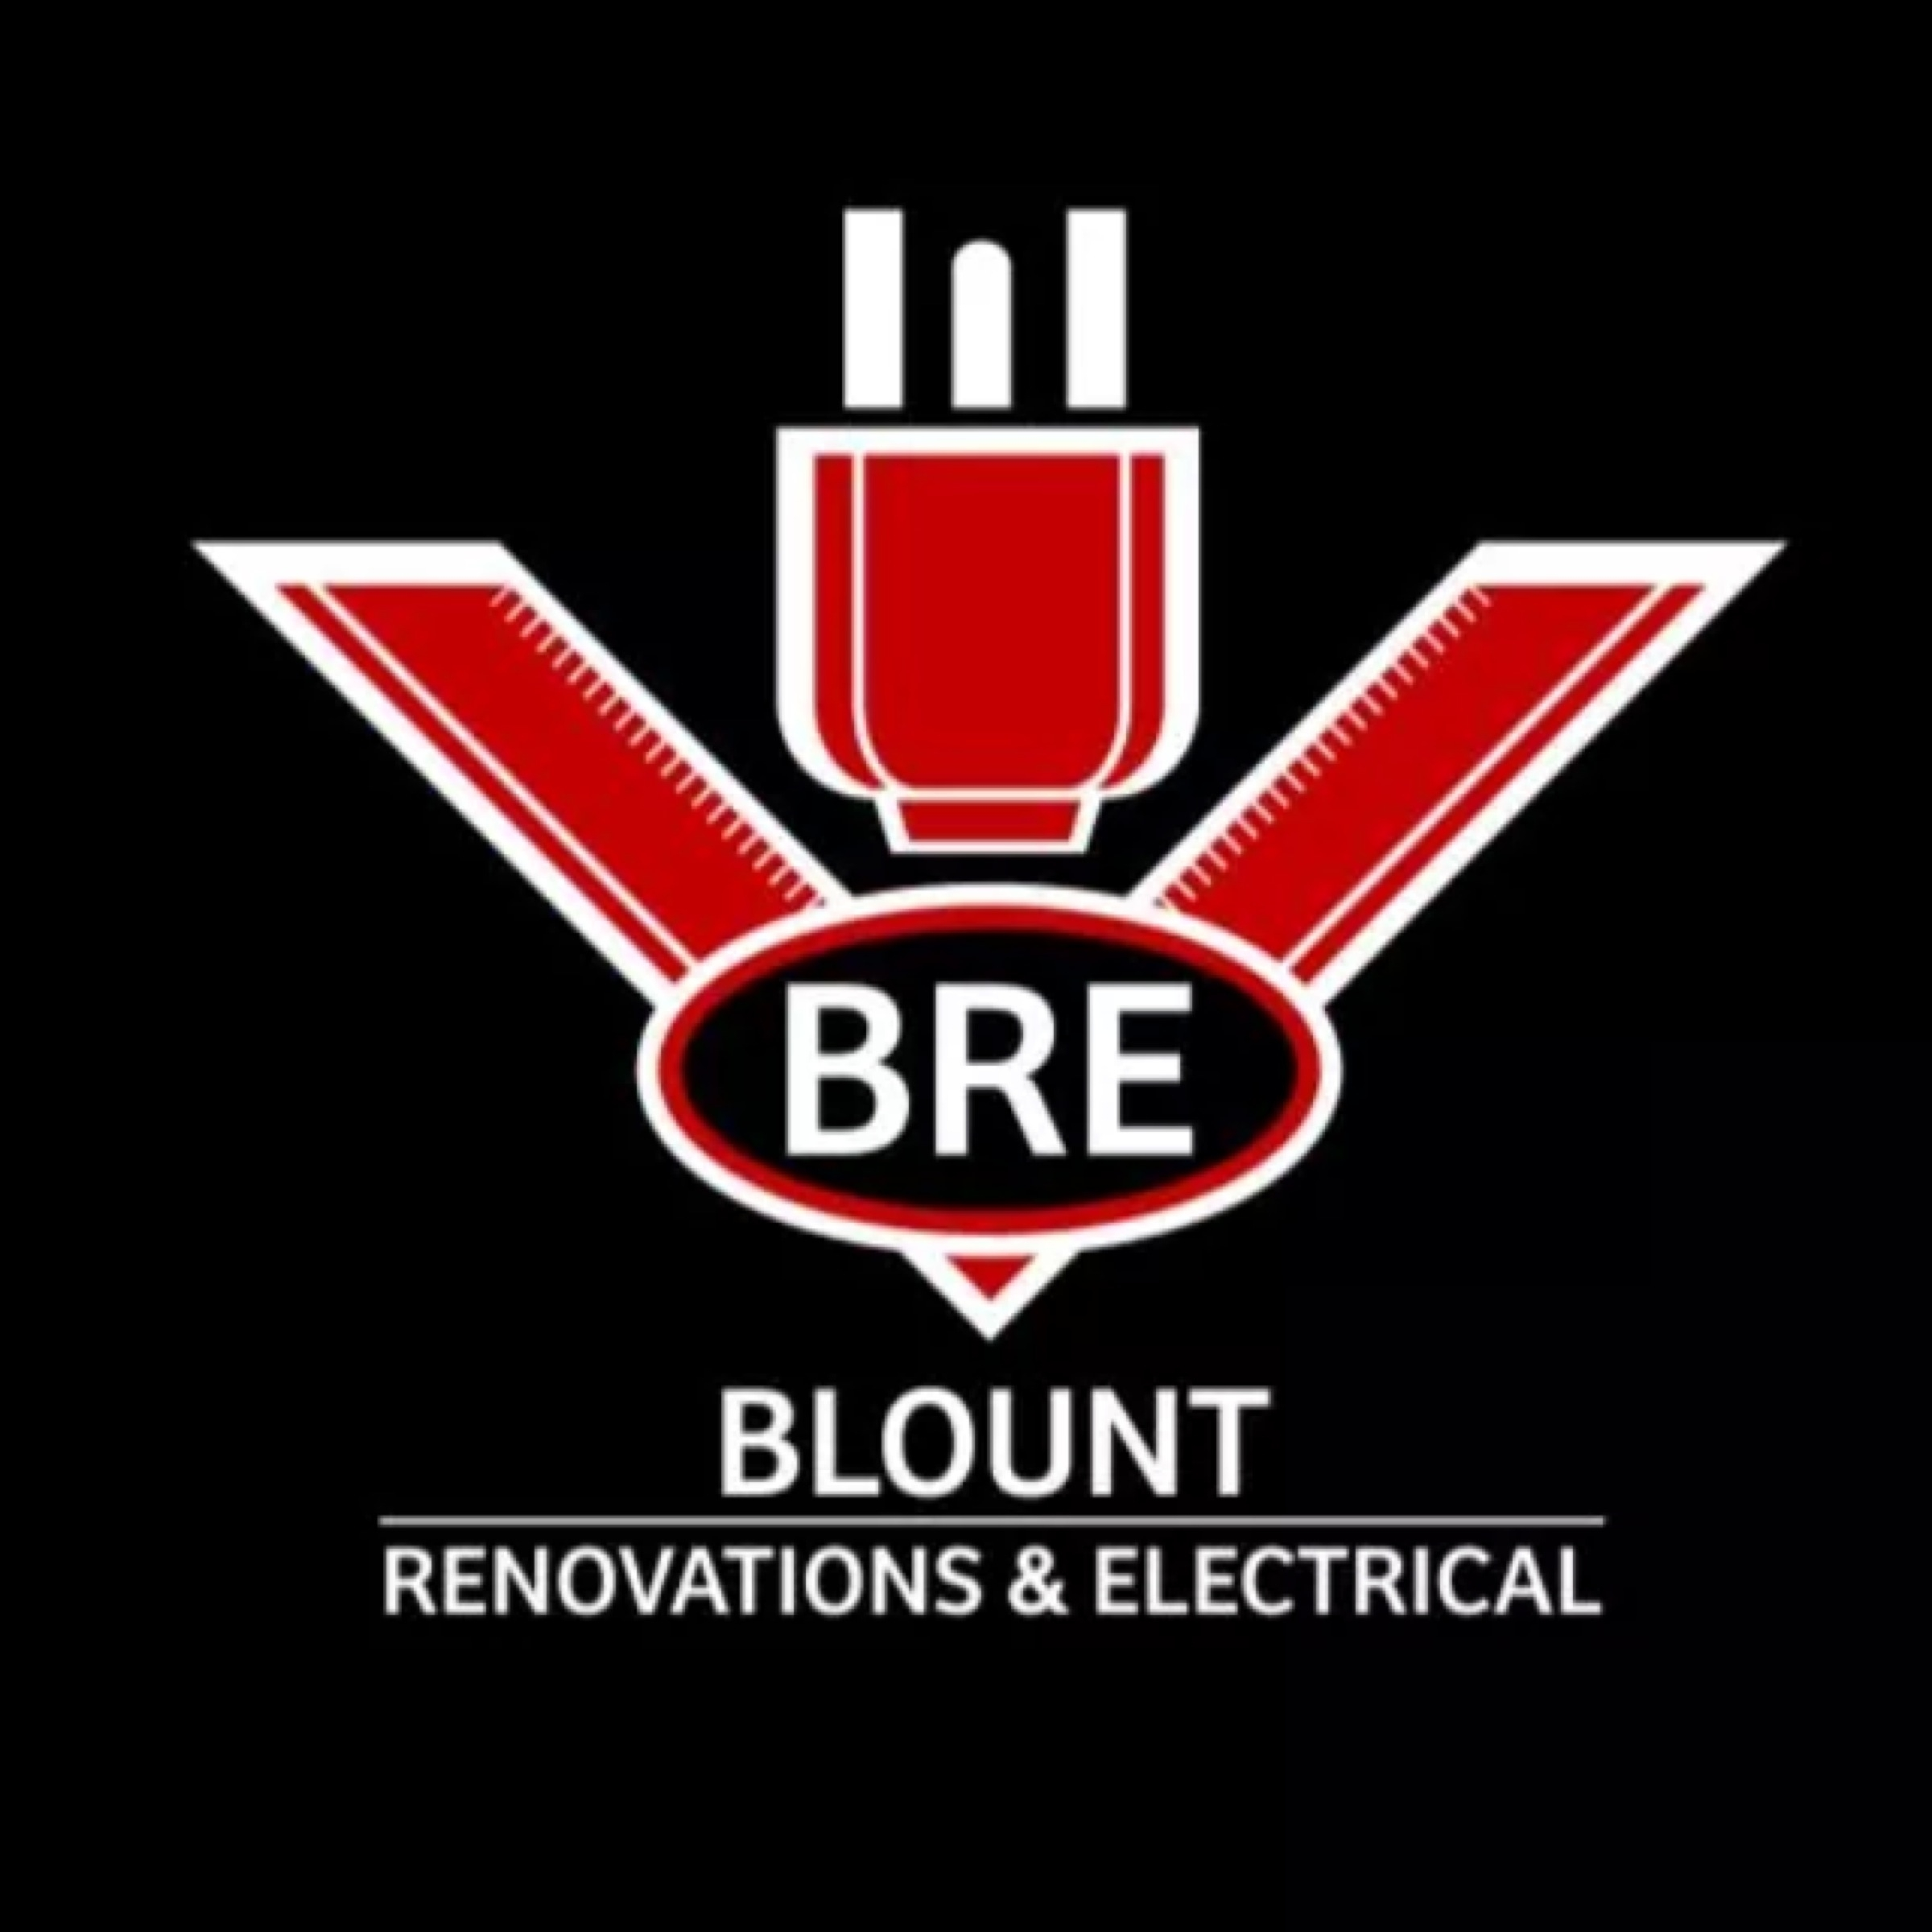 Blount Renovations & Electrical